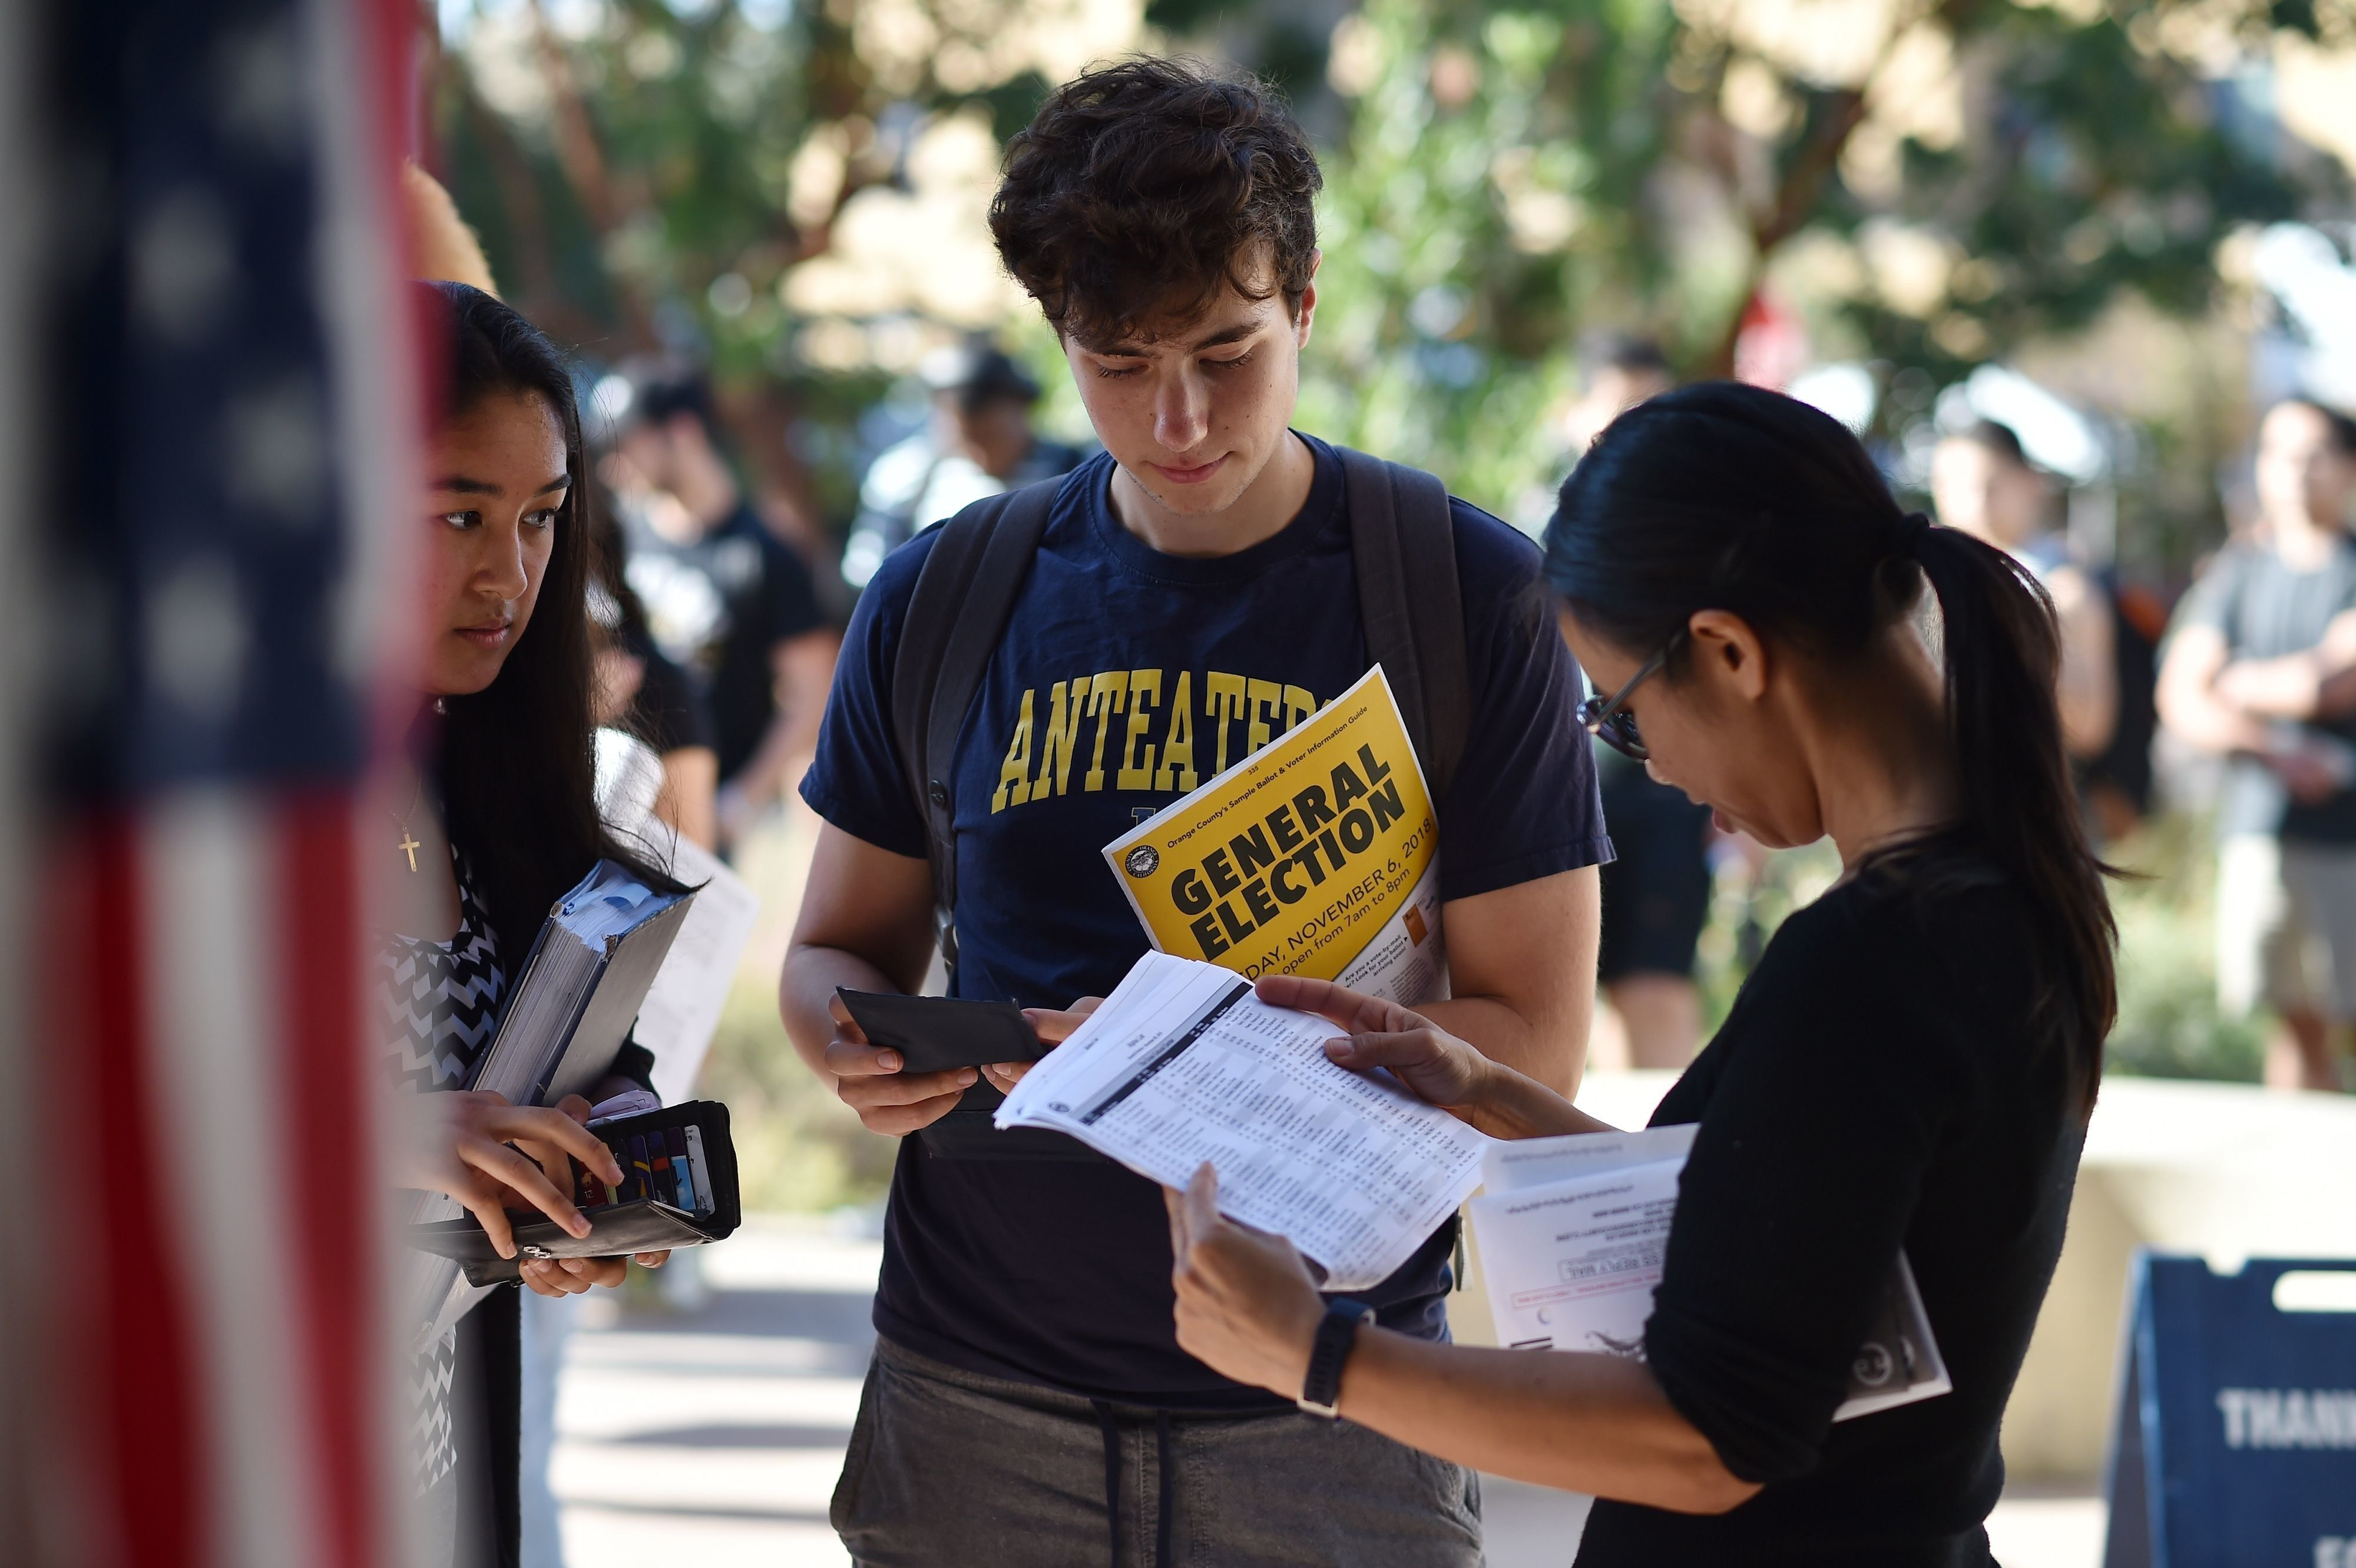 Students wait in line to cast their ballot at a polling station on the campus of the University of California, Irvine, on November 6, 2018 in Irvine, California on election day. - Americans vote Tuesday in critical midterm elections that mark the first major voter test of Donald Trump's presidency, with control of Congress at stake. (Photo by Robyn Beck / AFP)        (Photo credit should read ROBYN BECK/AFP/Getty Images)